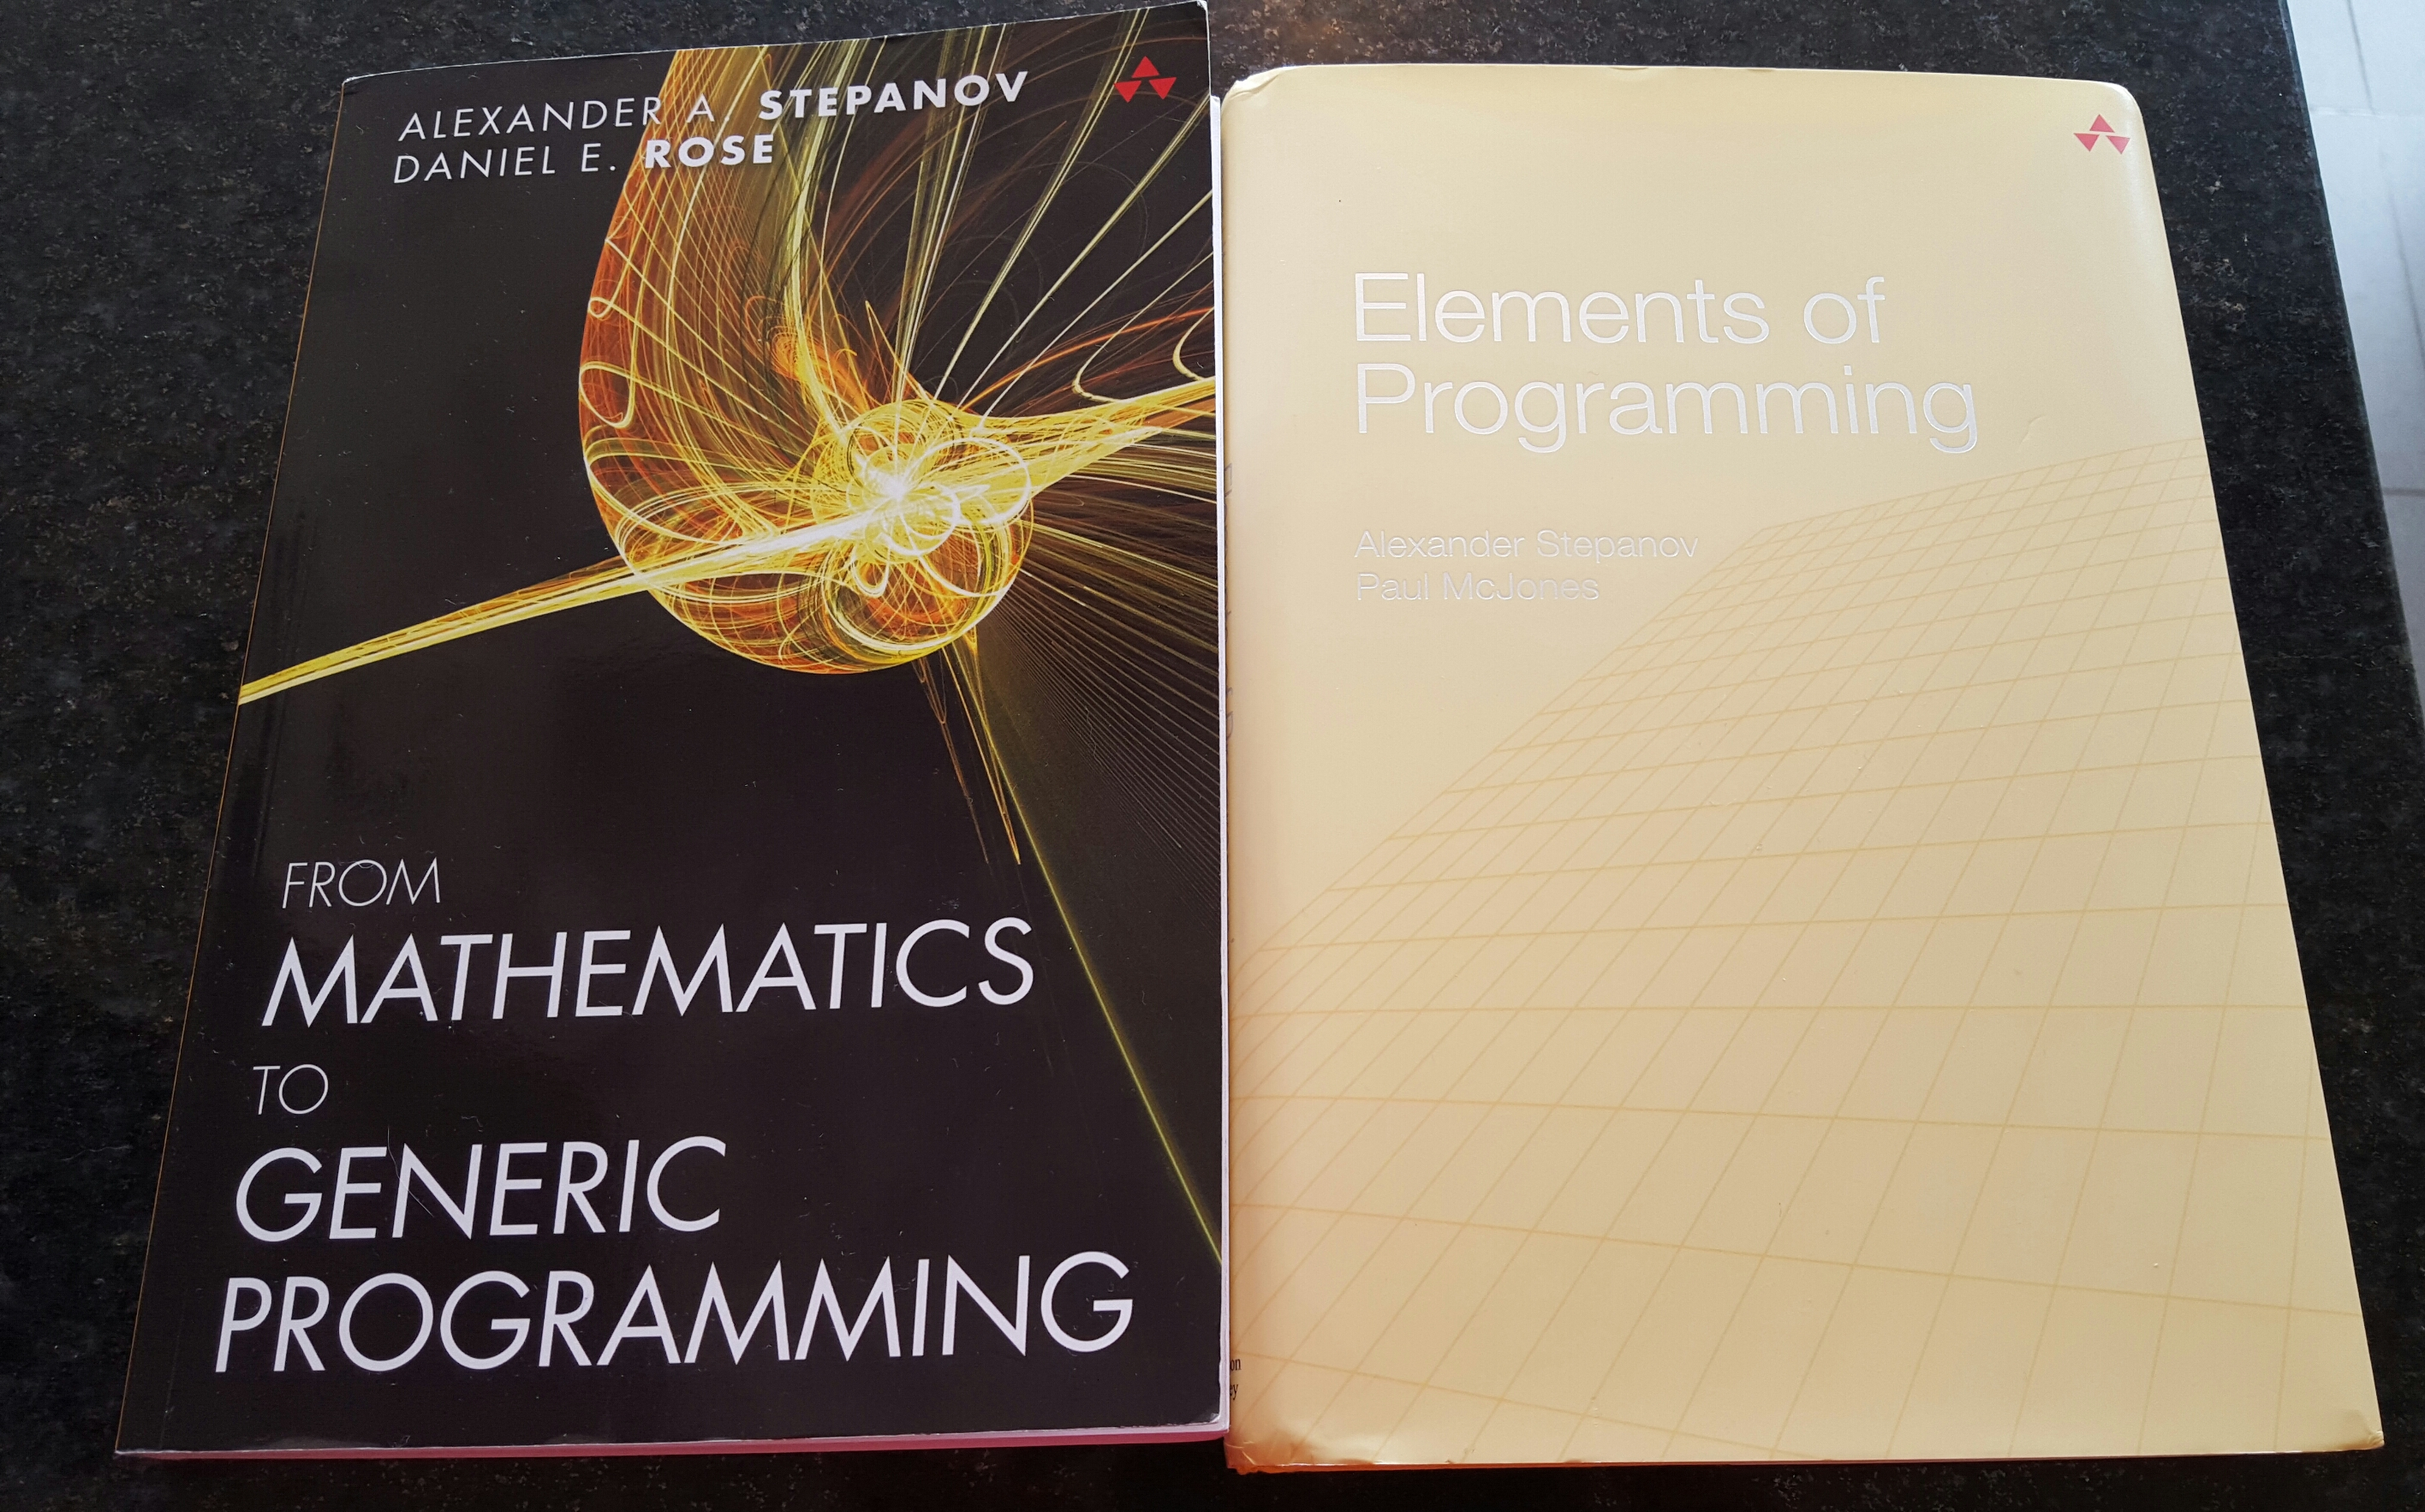 Elements of Programming and From Mathematics to Generic Programming